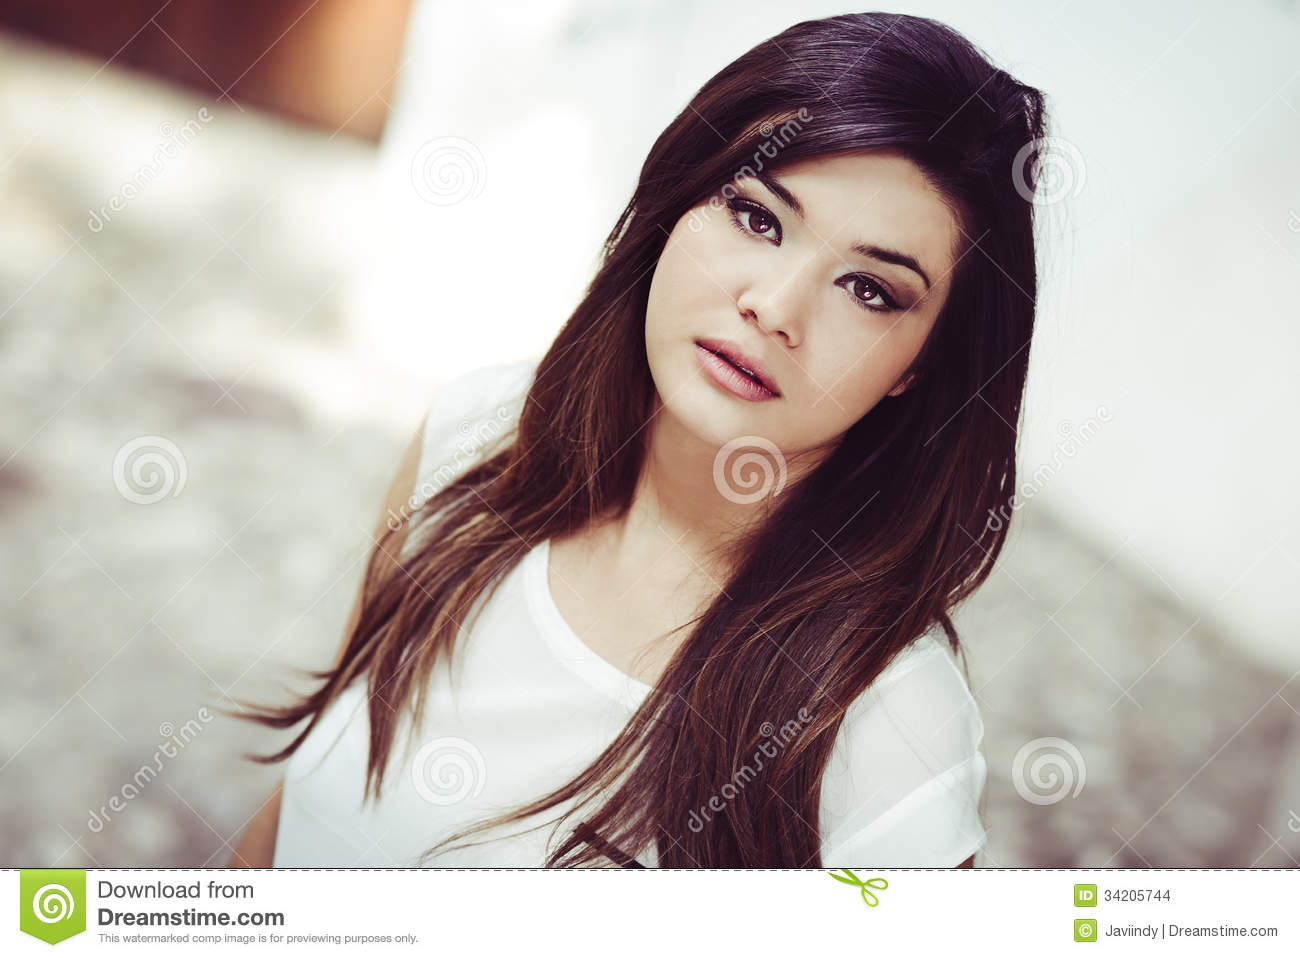 ville platte single asian girls Derbyvillecom - horse racing nation - online racing - the original large scale horse racing simulation game and management game.